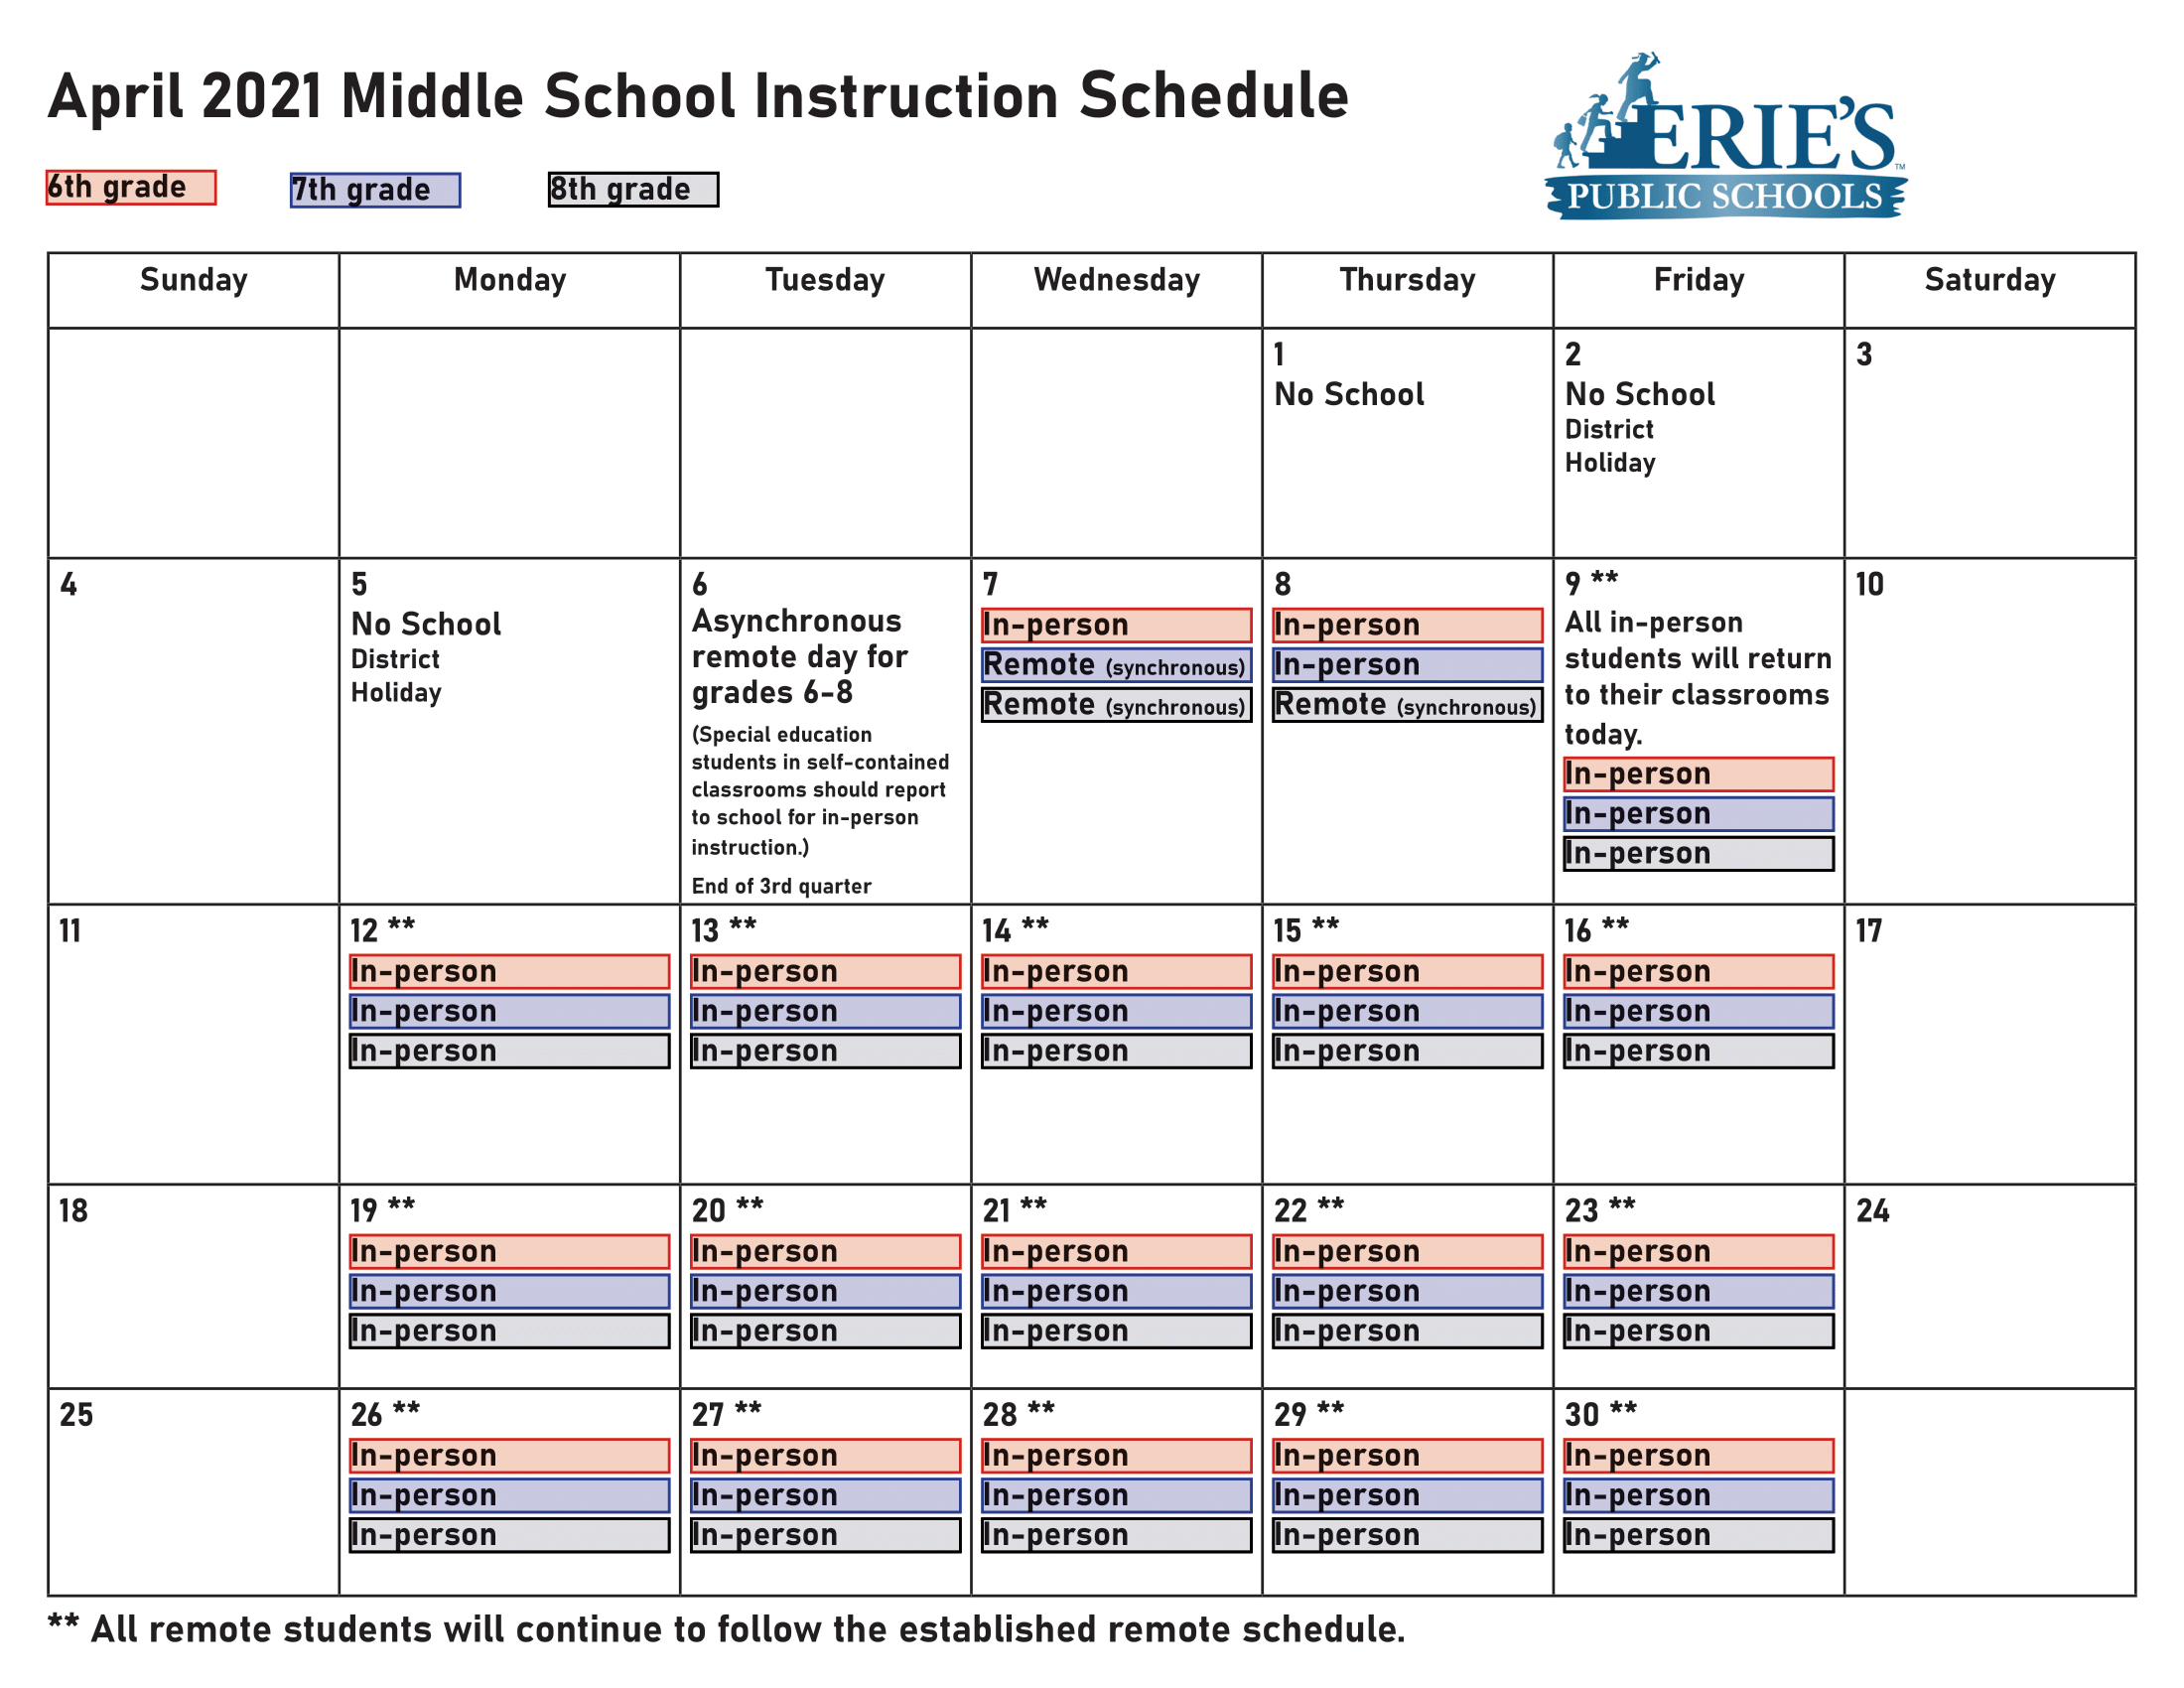 Return to In-Person Instruction Schedule Middle School